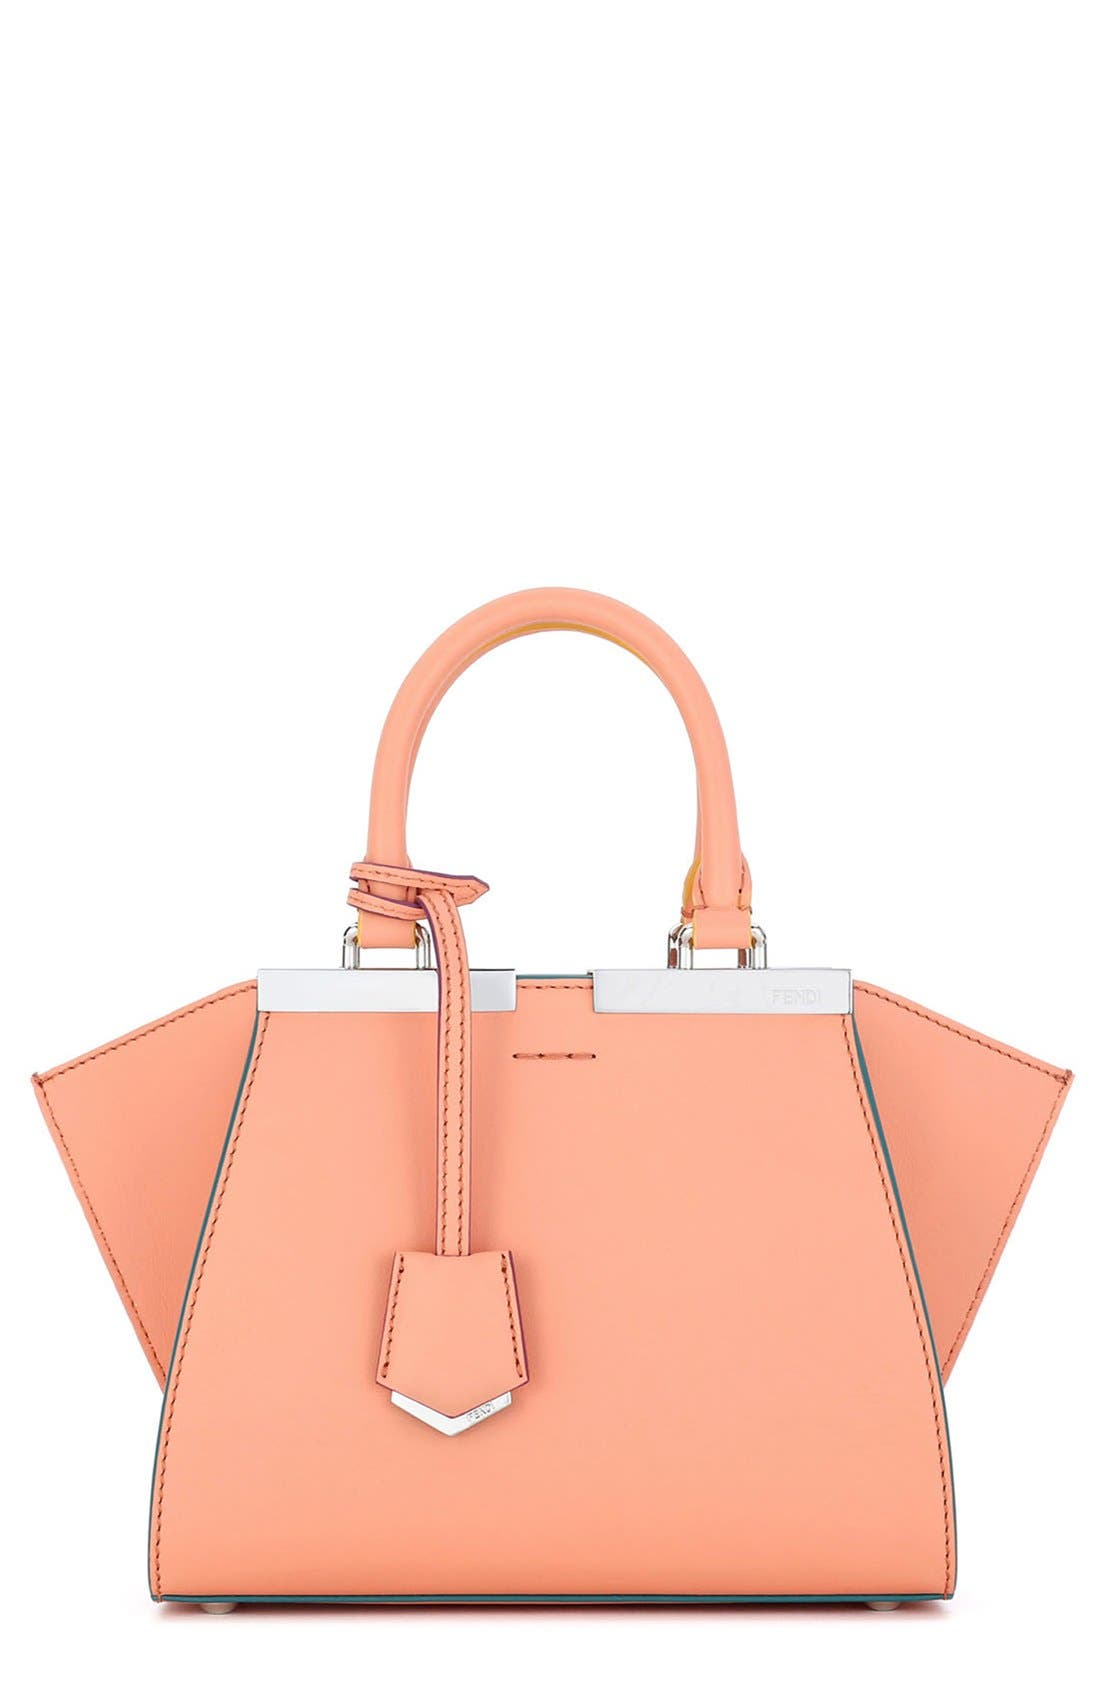 Fendi 'Mini 3Jours' Calfskin Leather Shopper